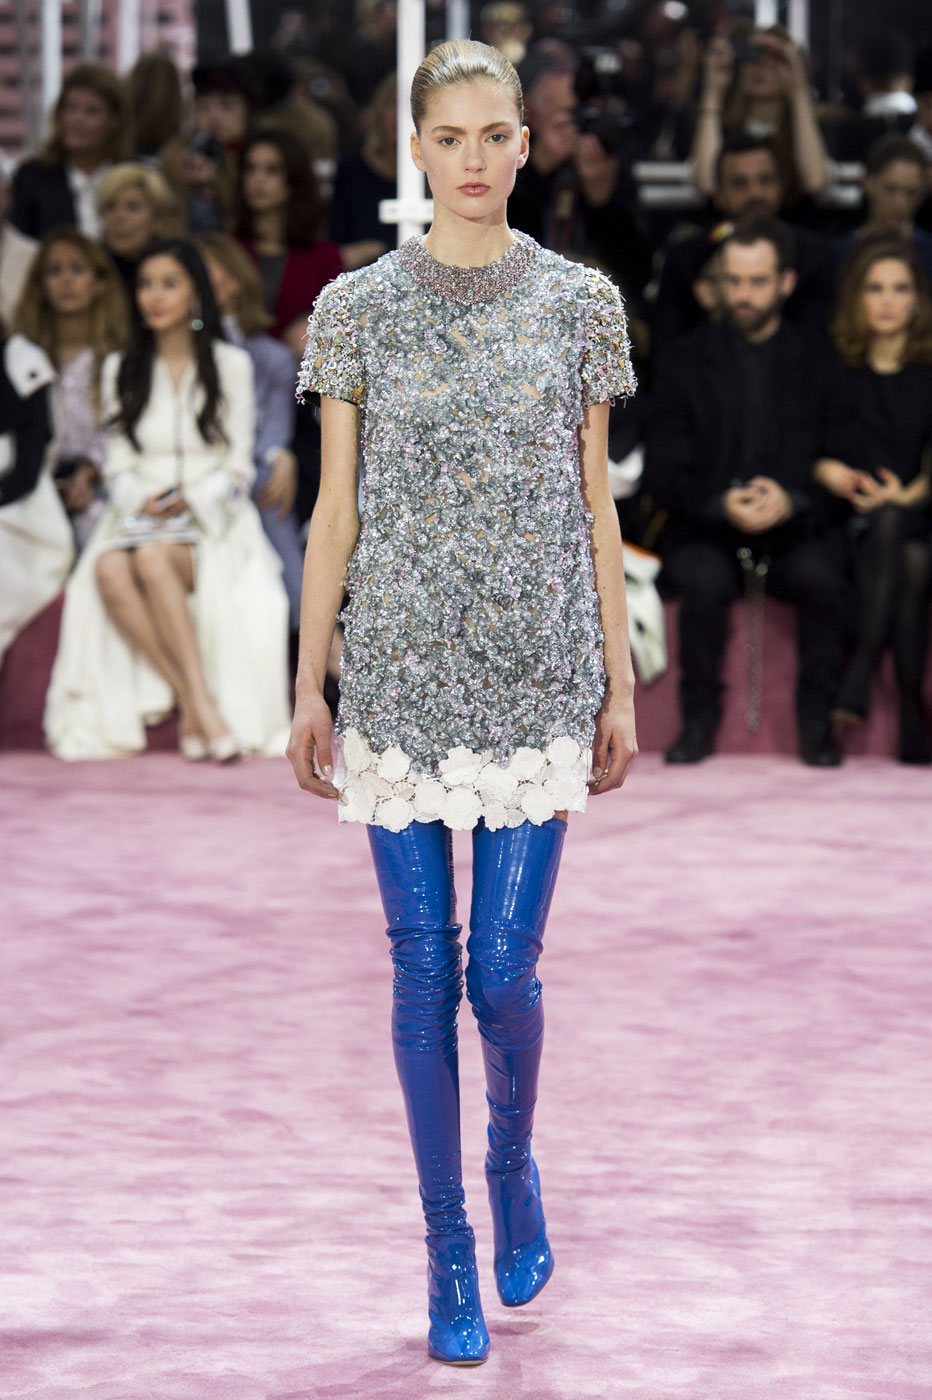 Christian-Dior-fashion-runway-show-haute-couture-paris-spring-summer-2015-the-impression-070